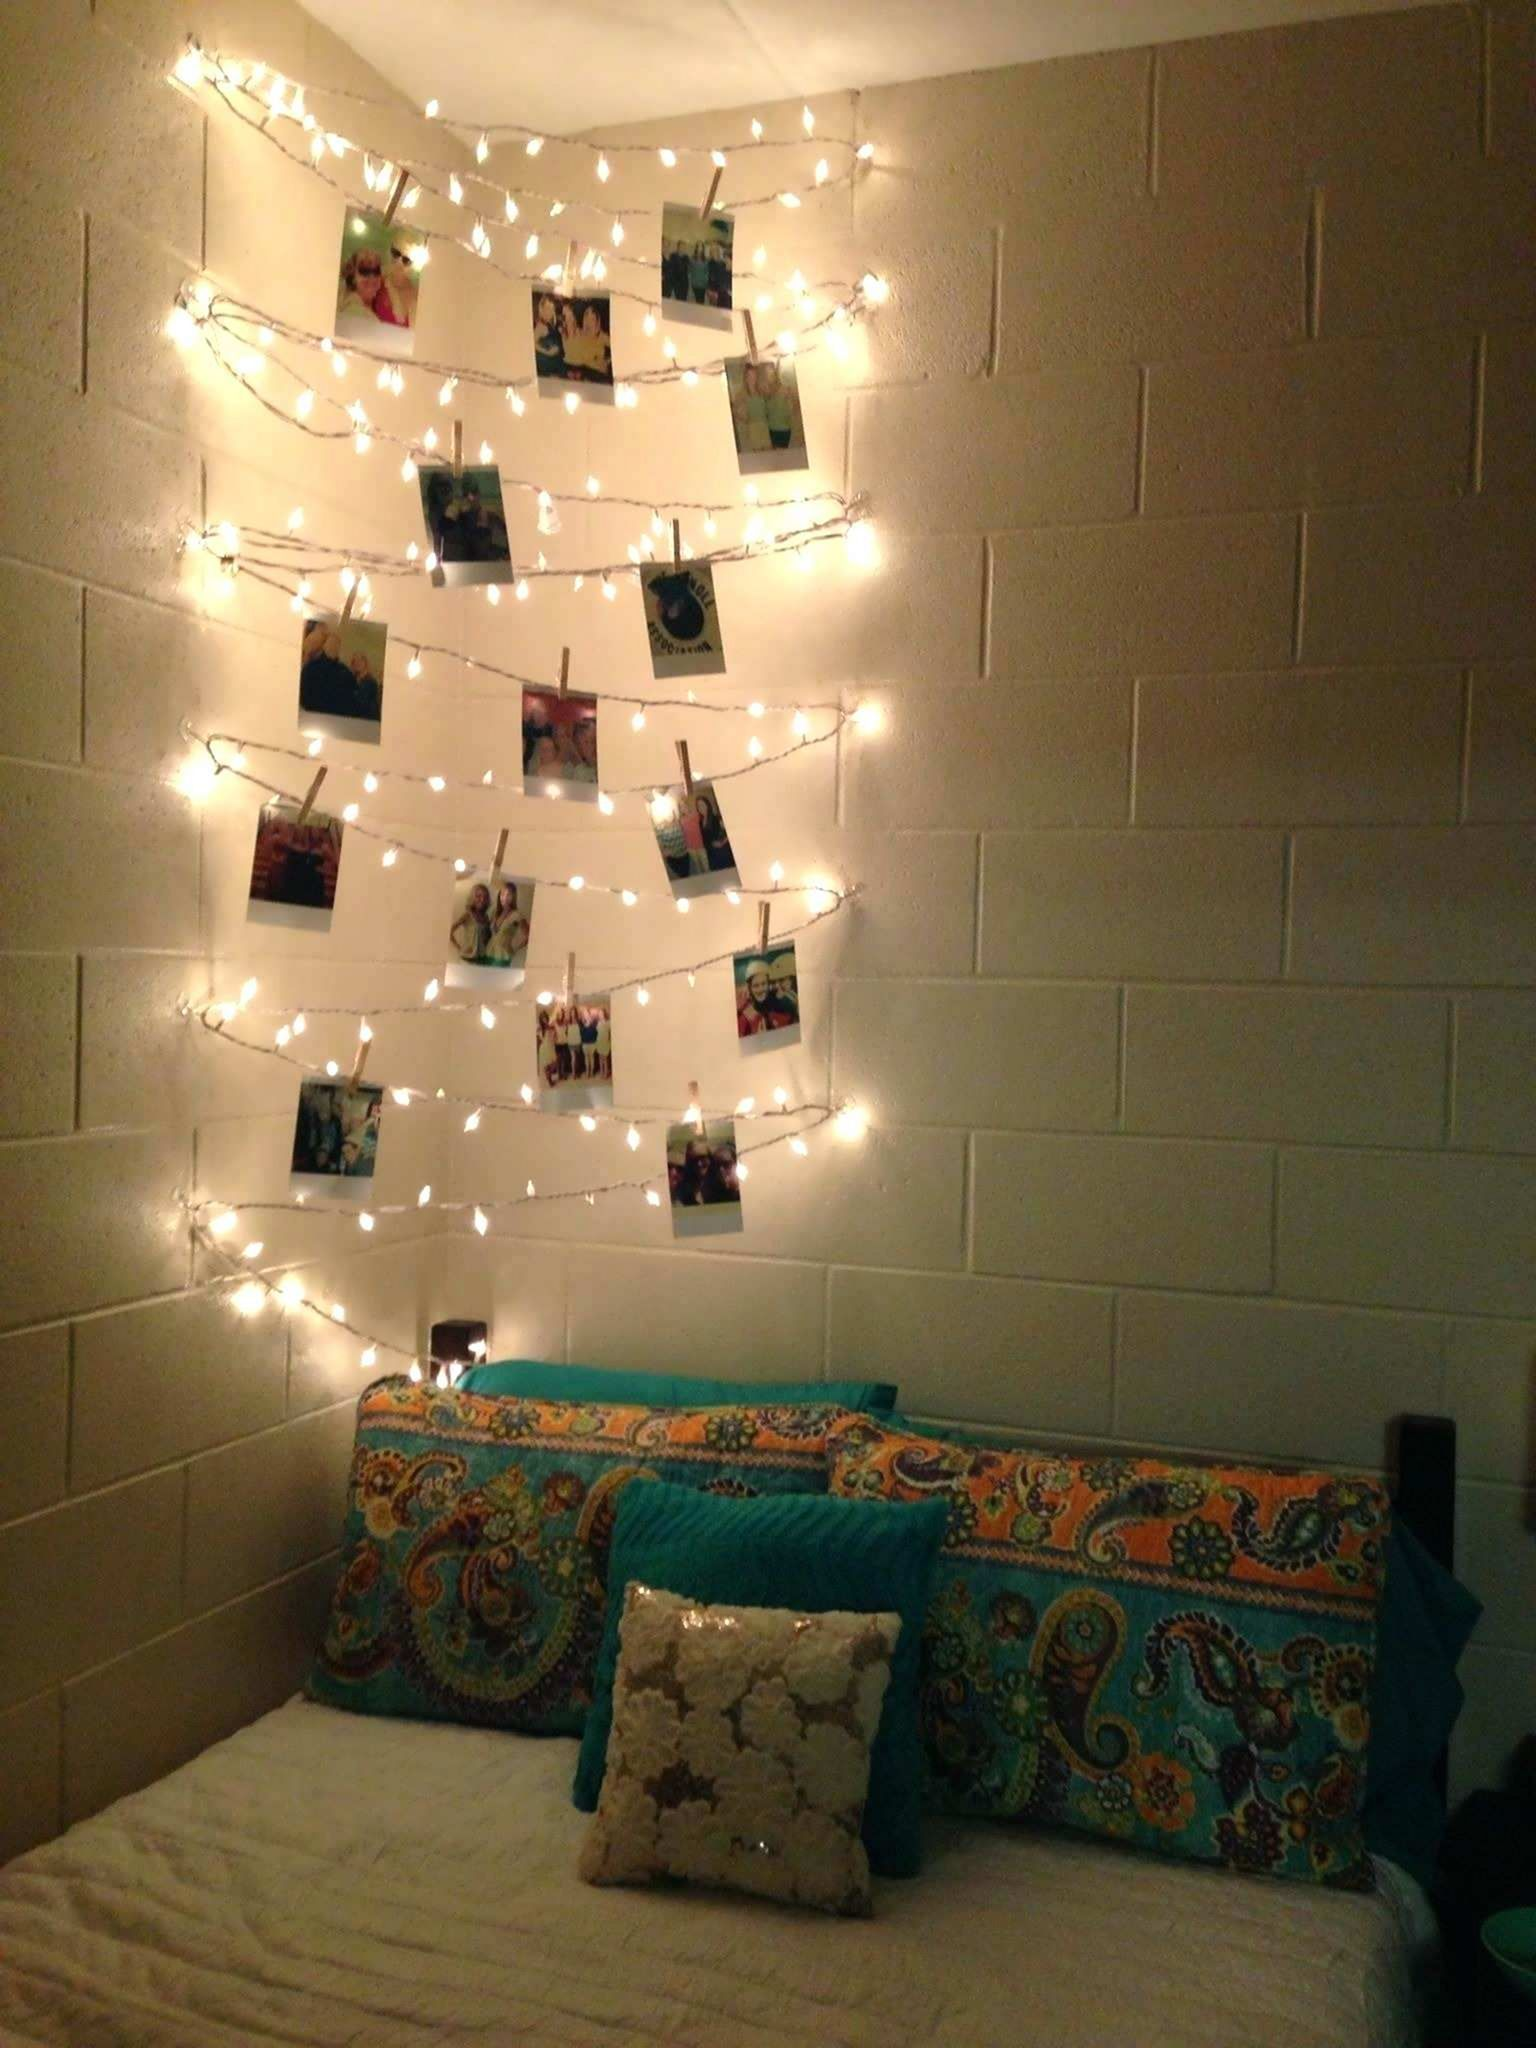 Awesome 25 Diy Bedroom Lighting Decorating For Easy And Cheap Relaxation Ideas Christmas Lights In Bedroom Room Diy Bedroom Diy